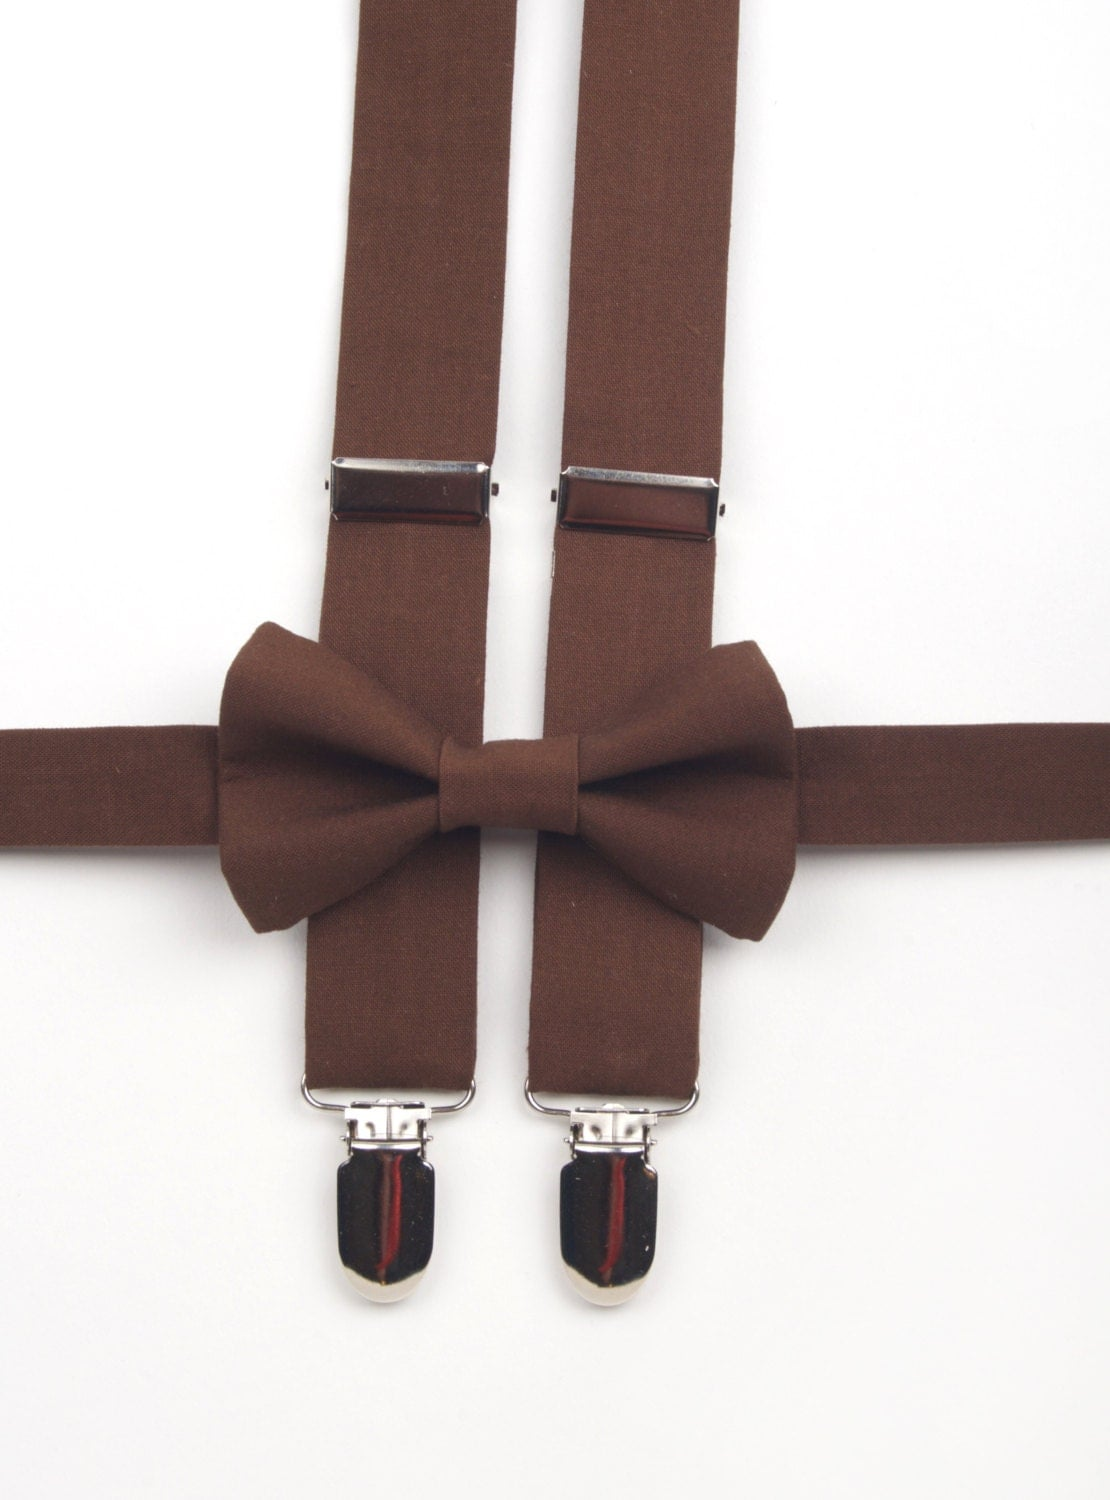 Find great deals on eBay for new york suspenders. Shop with confidence.